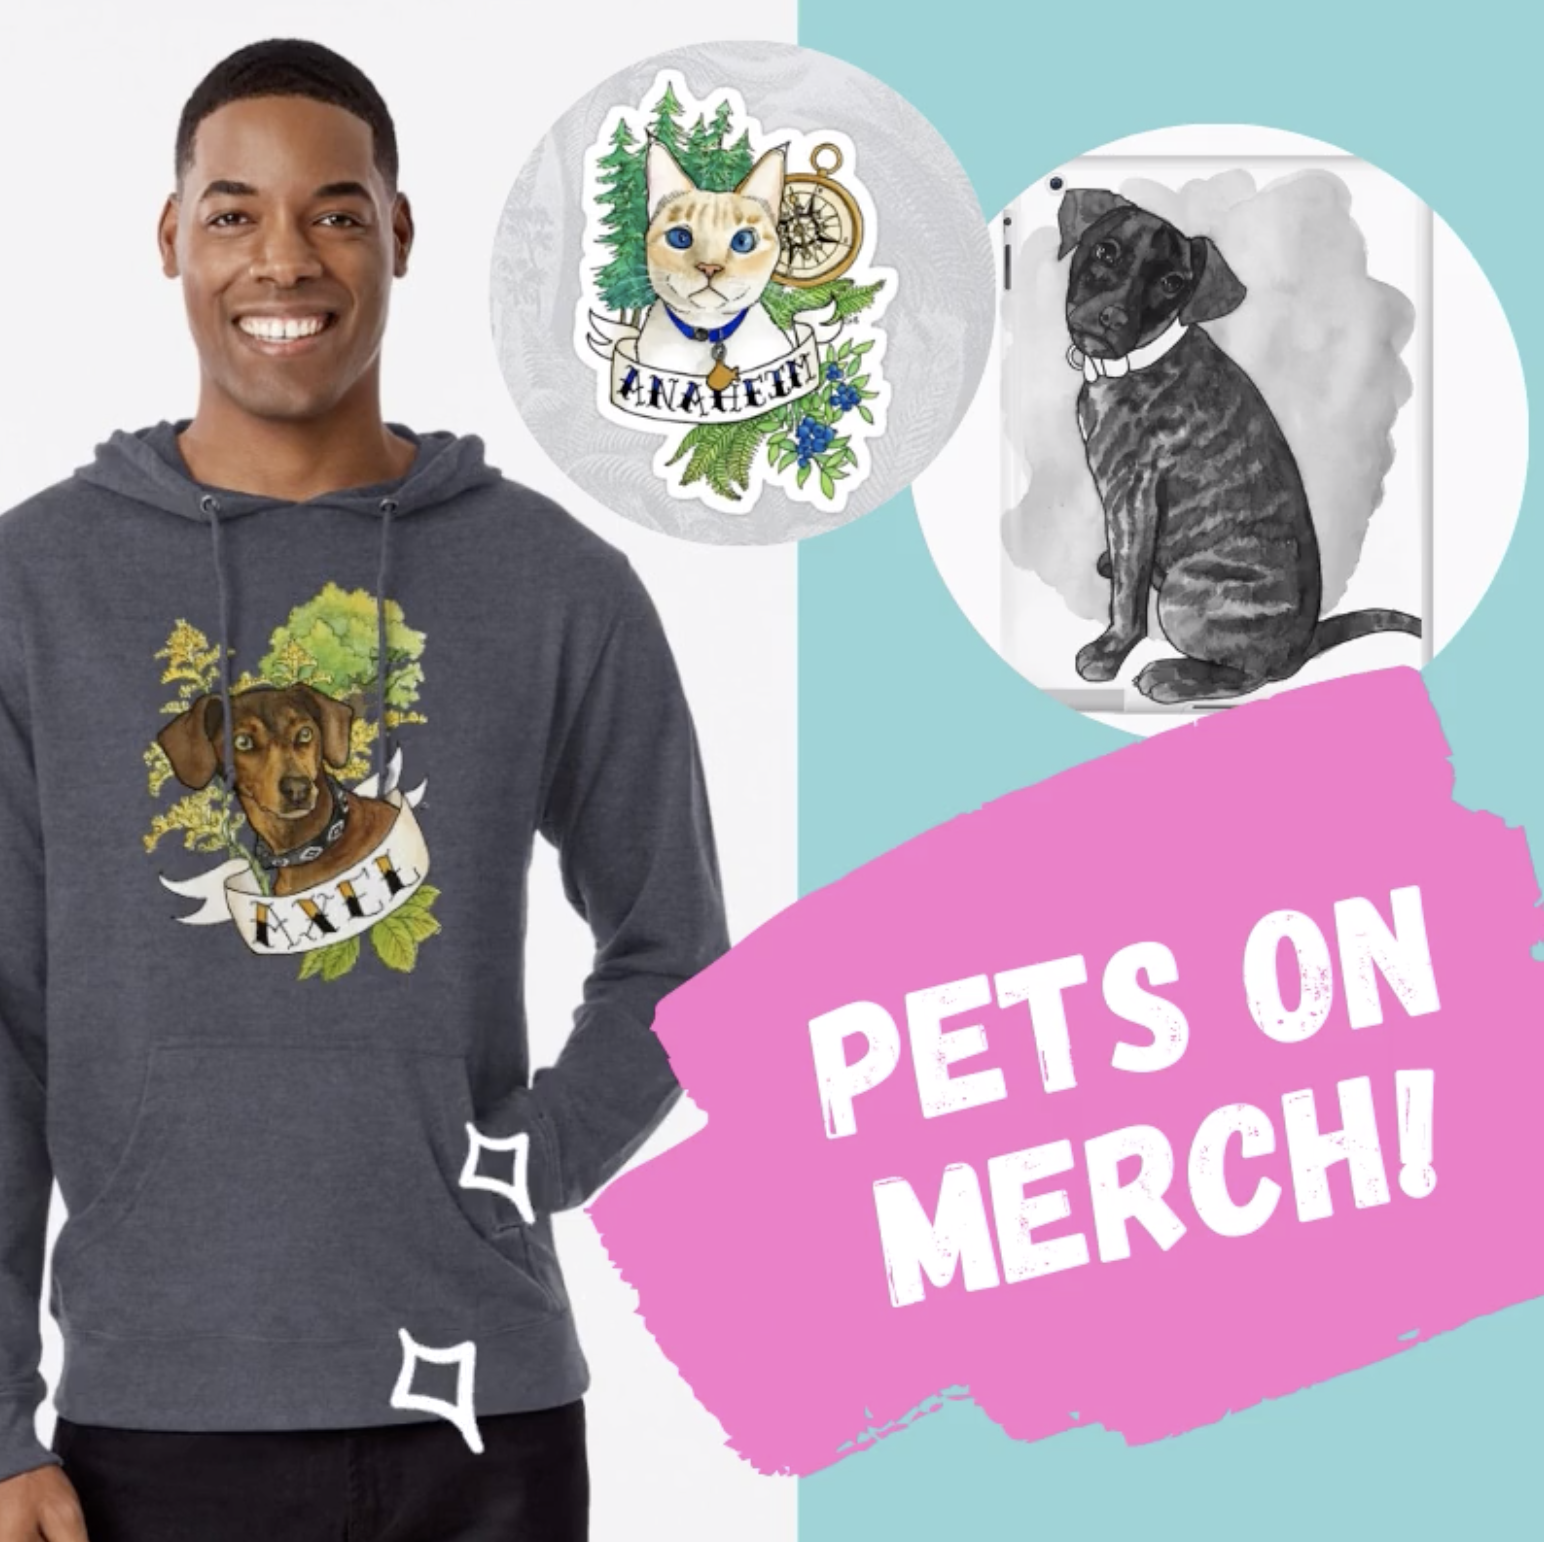 Pets on Merch! Image.png